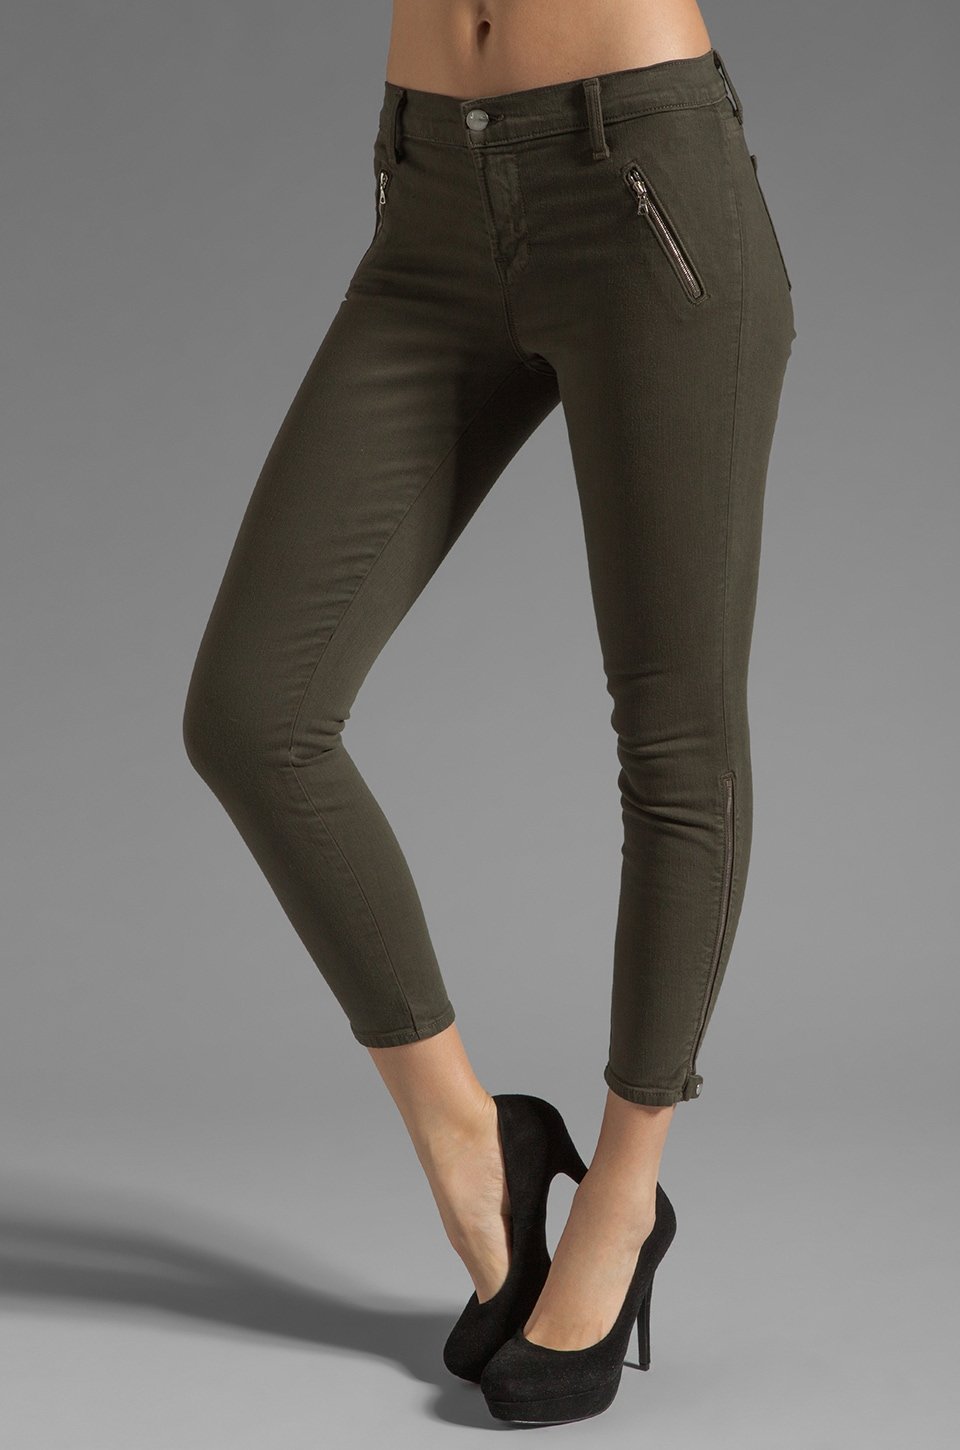 J Brand Carey Jewel Zip Moto Capri in Mantis